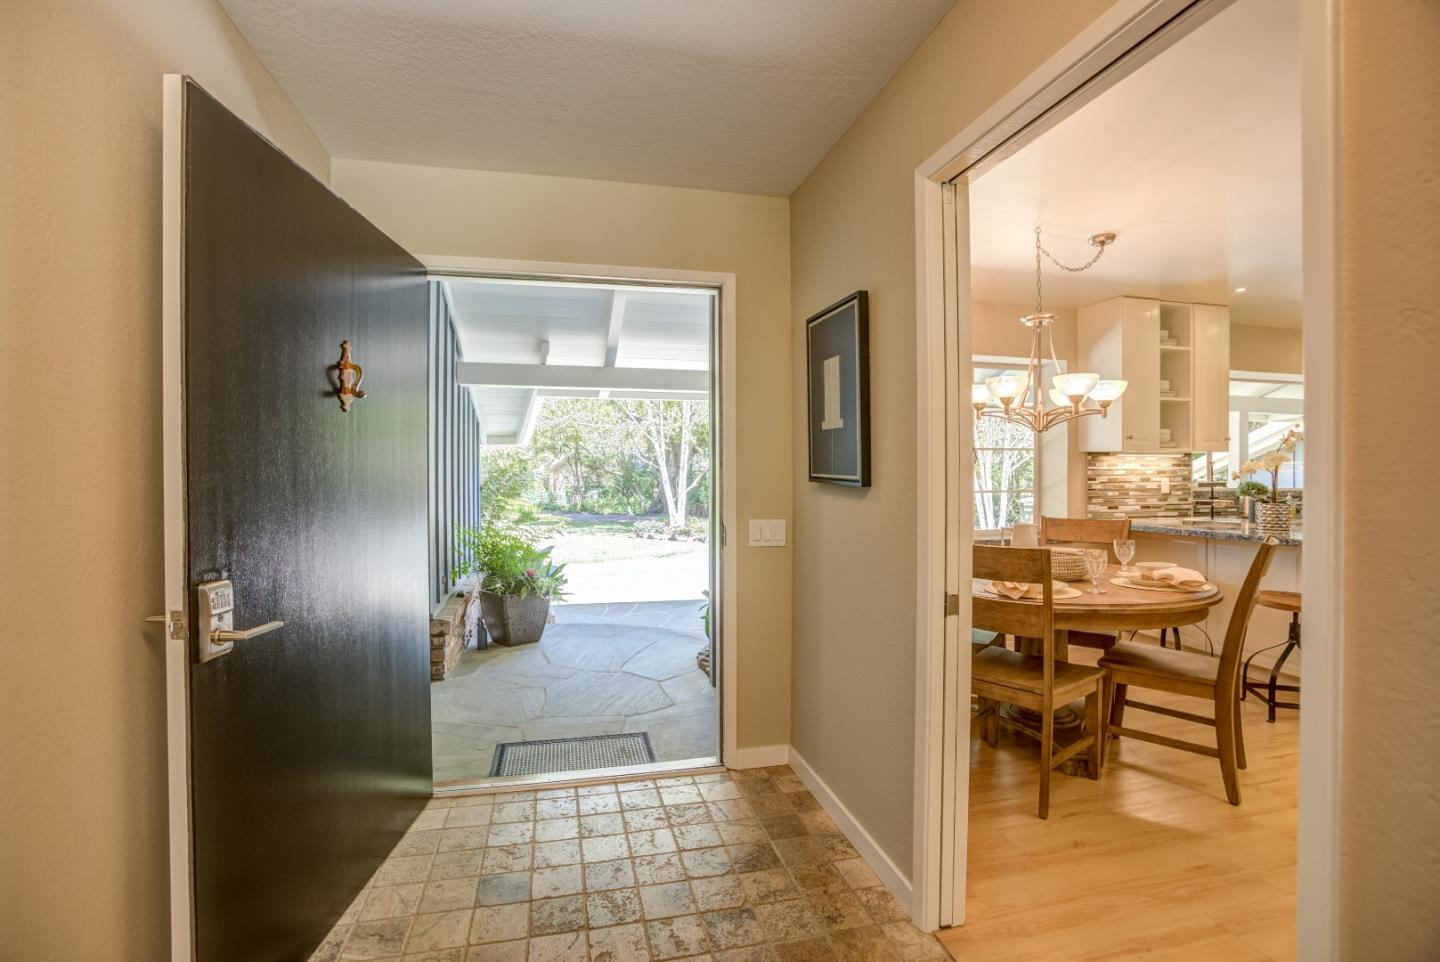 1001 Parma Way Los Altos, CA 94024 - MLS #: ML81700739